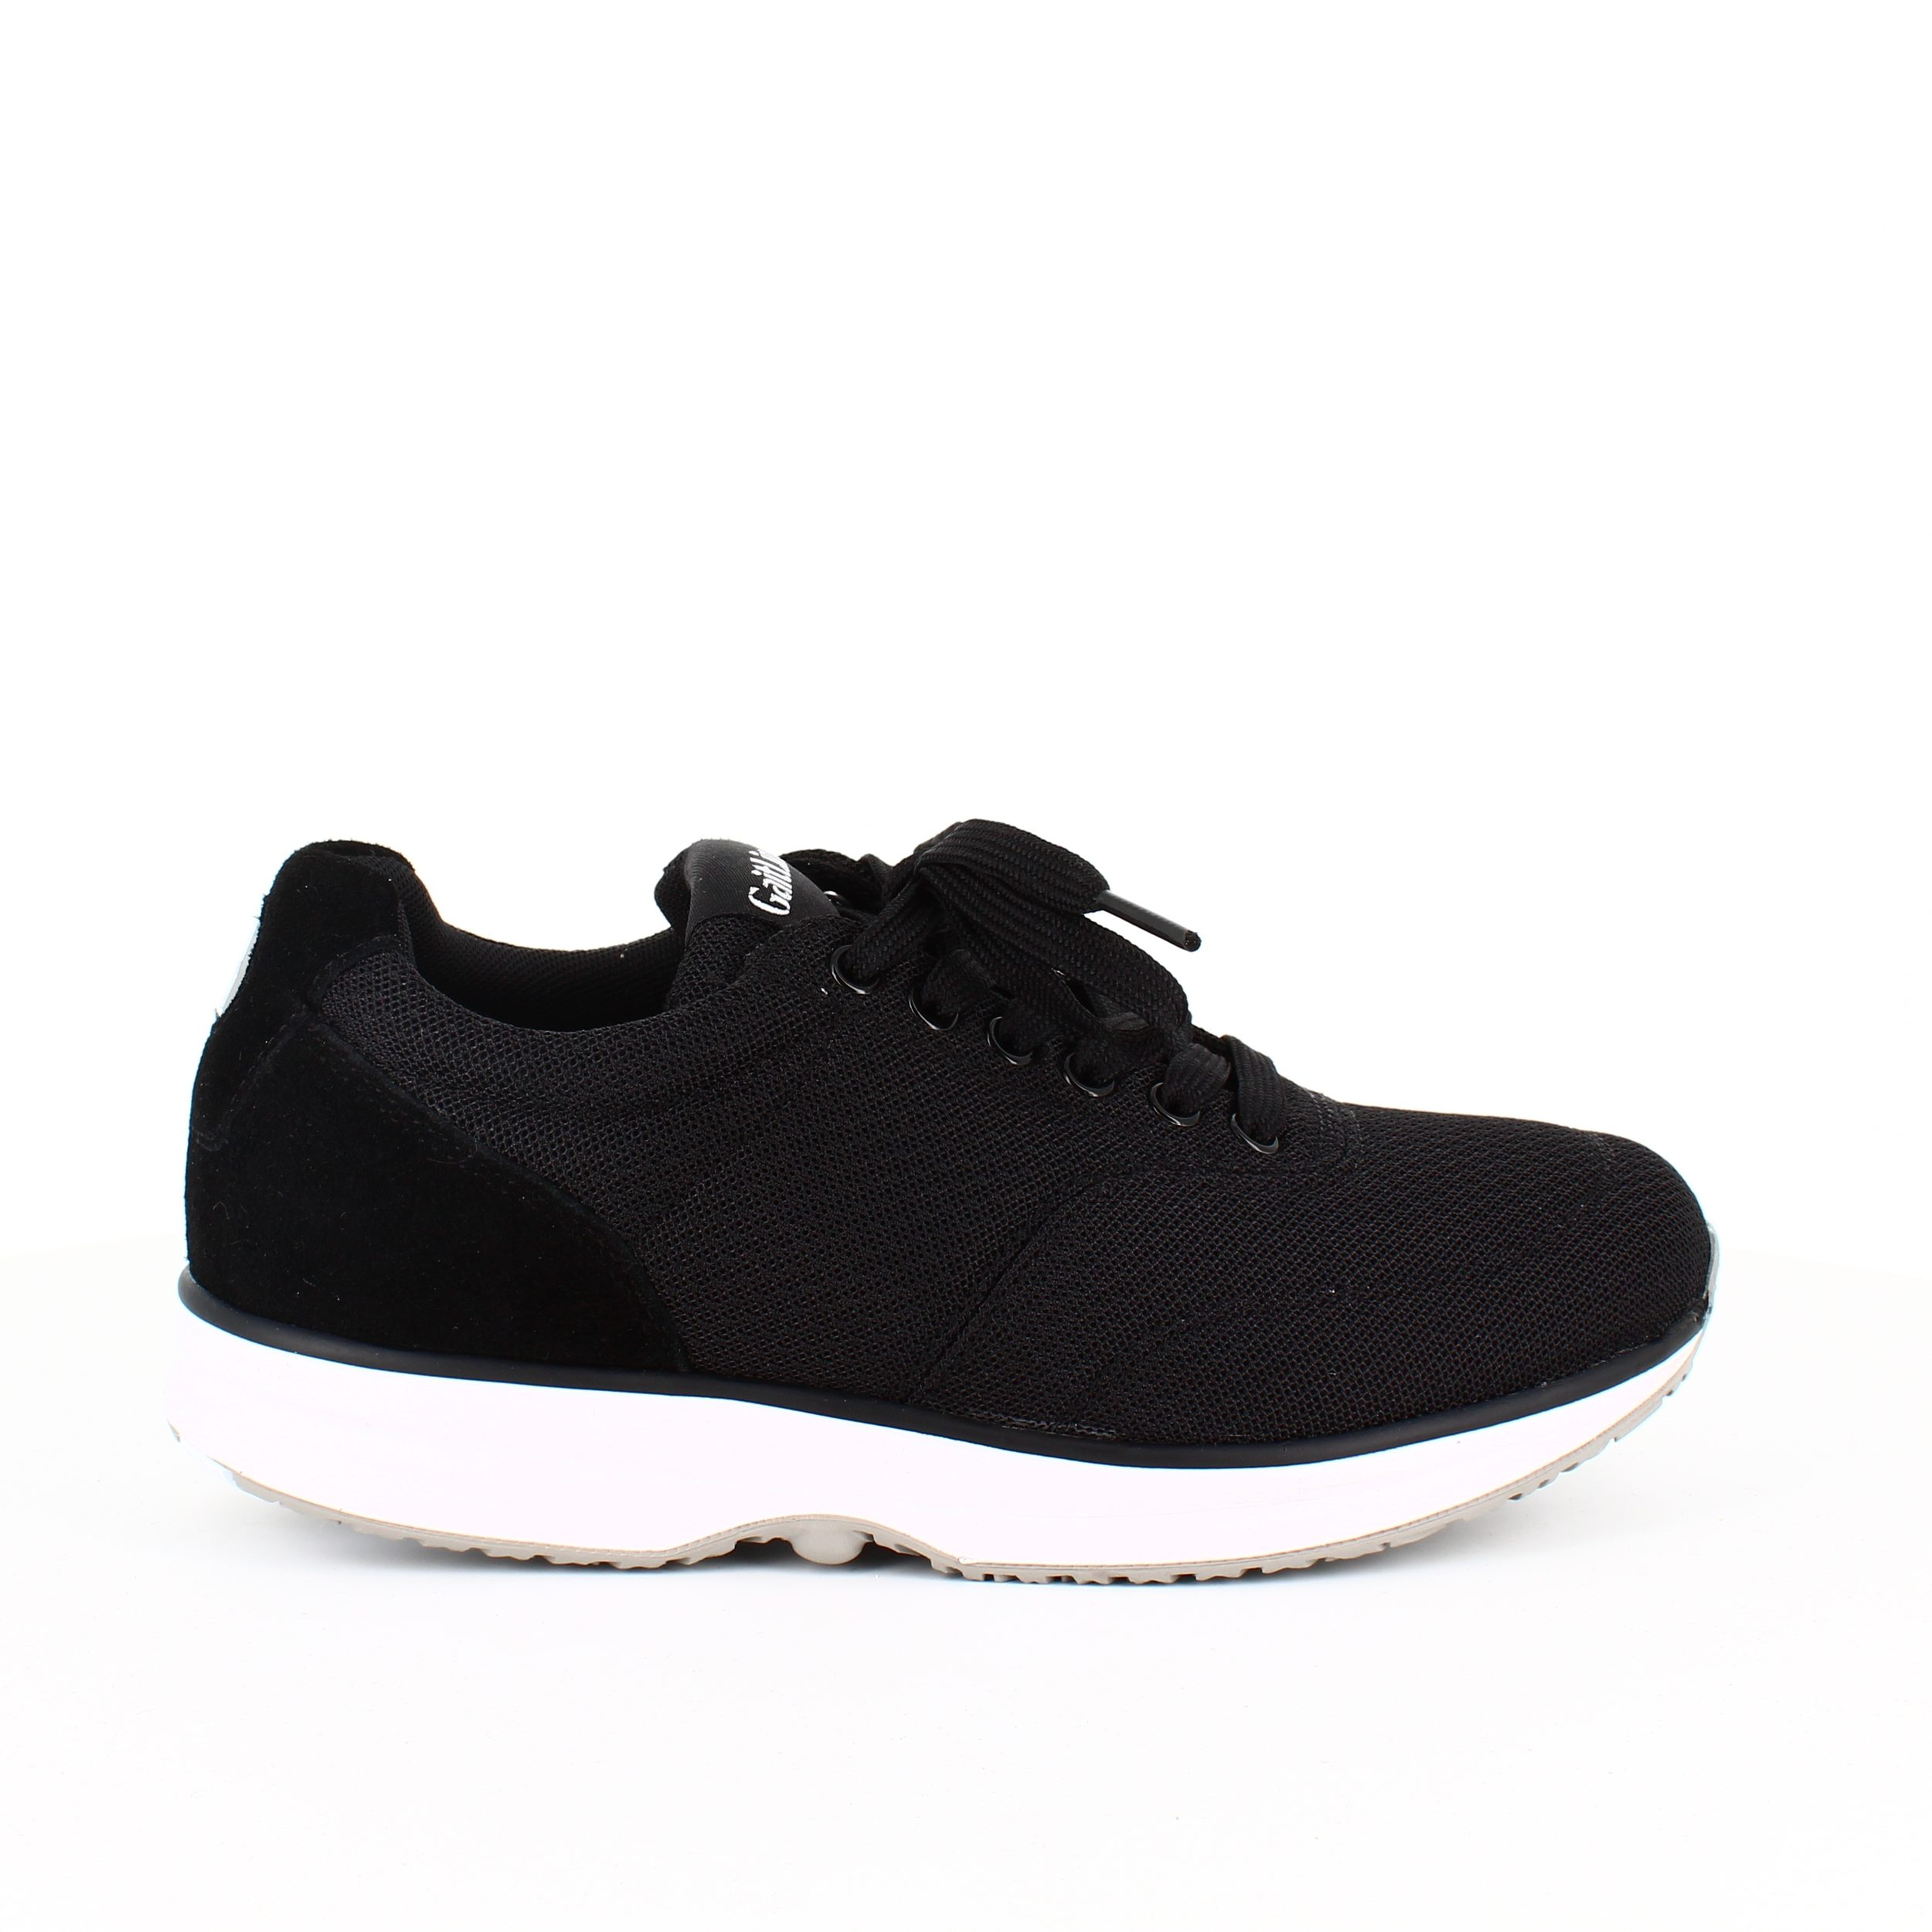 Image of   Flotte Sorte sneakers fra Gaitline - 38